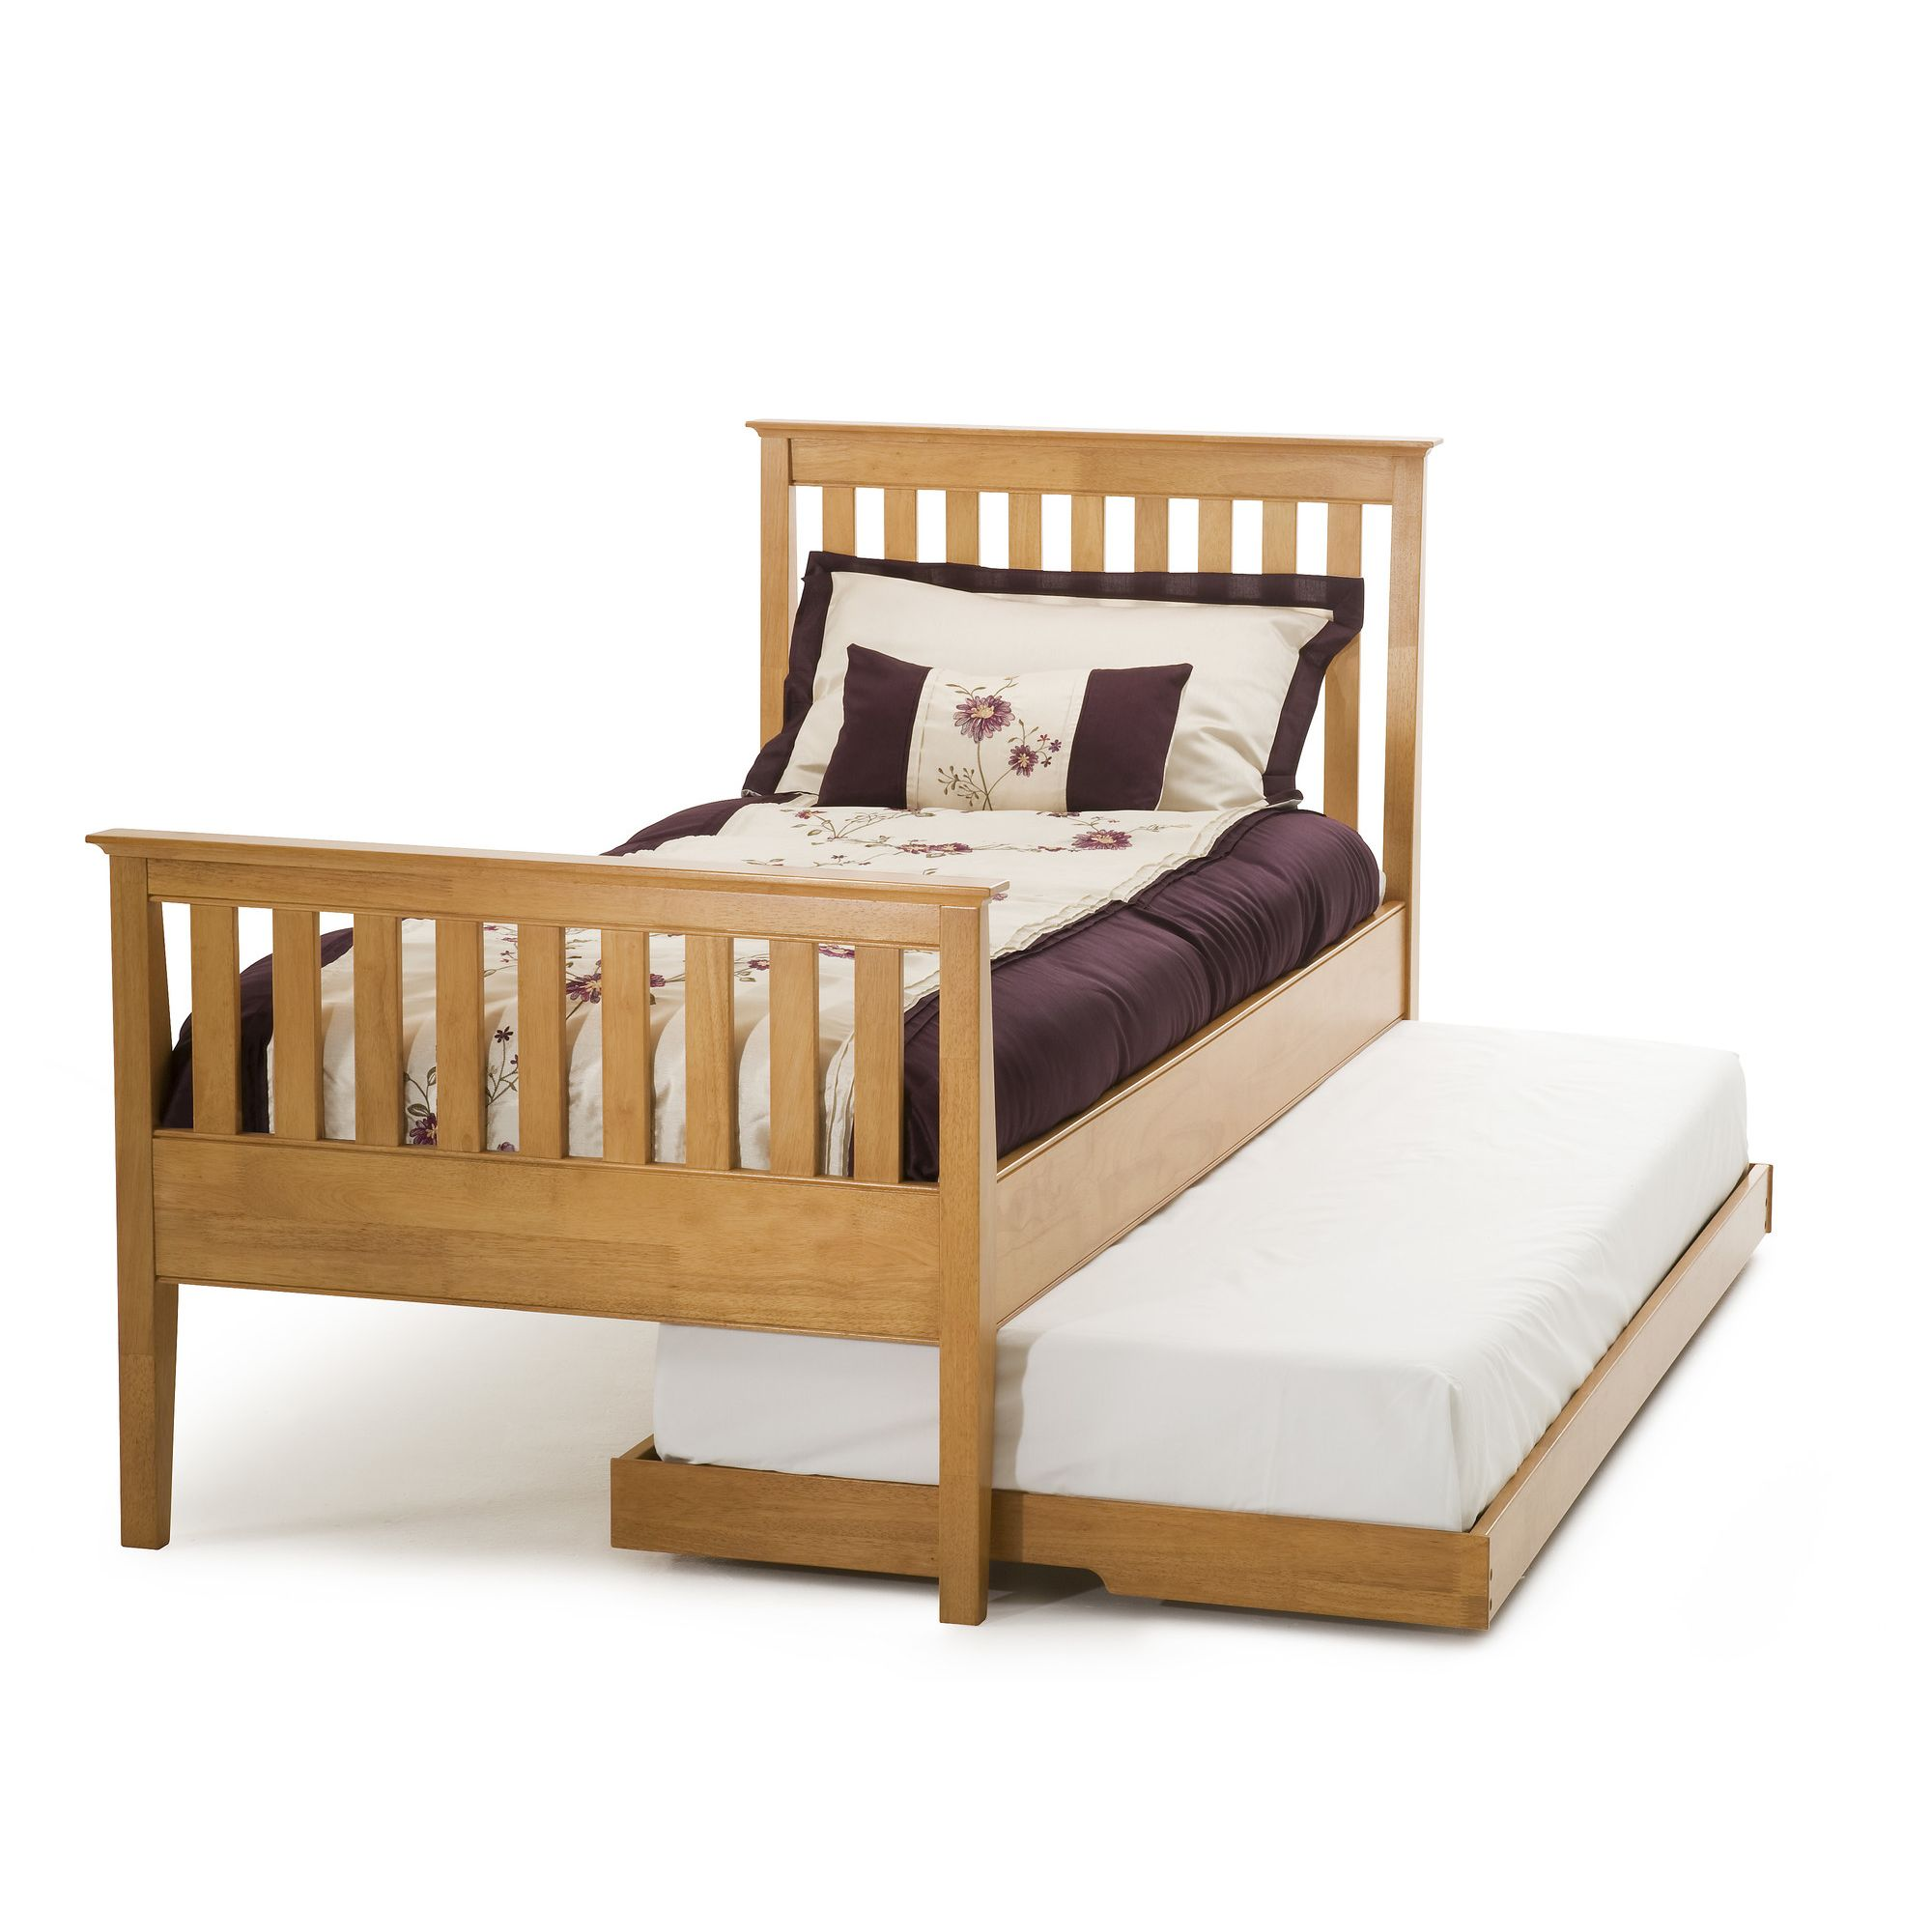 Serene Furnishings Grace Single Guest Bed with High Foot End - Golden Cherry at Tesco Direct